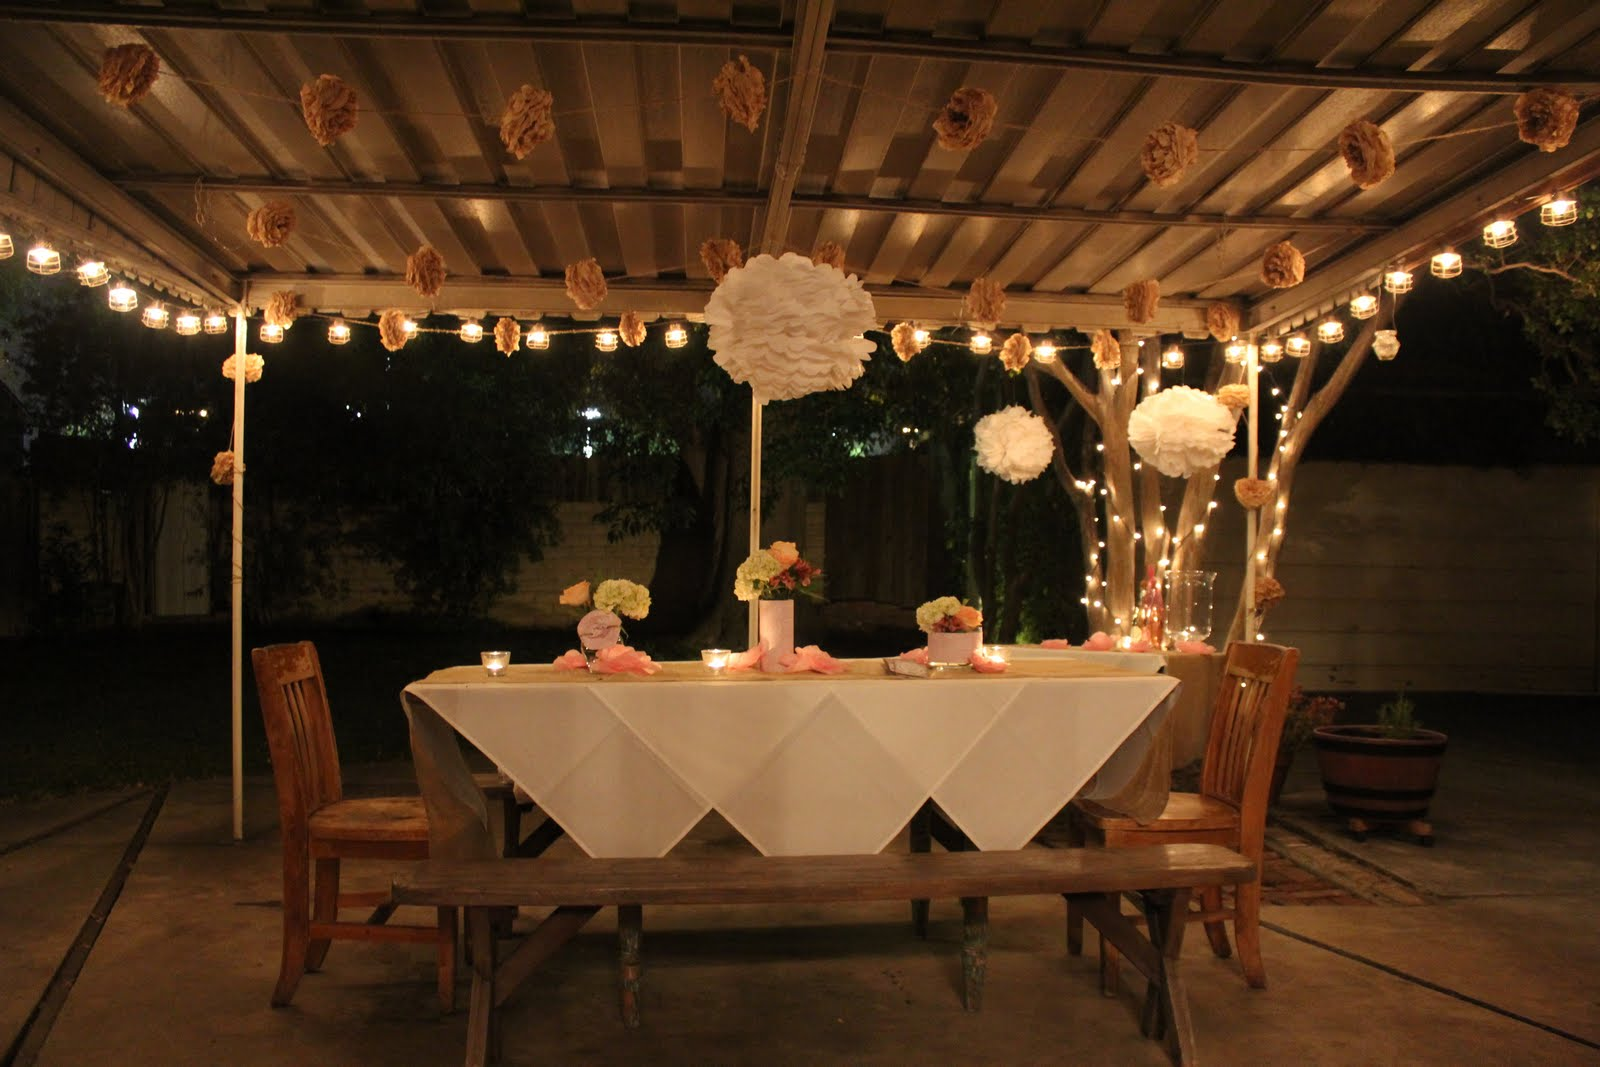 Juneberry Lane: Outdoor Champagne Soirée - A Simple & Elegant